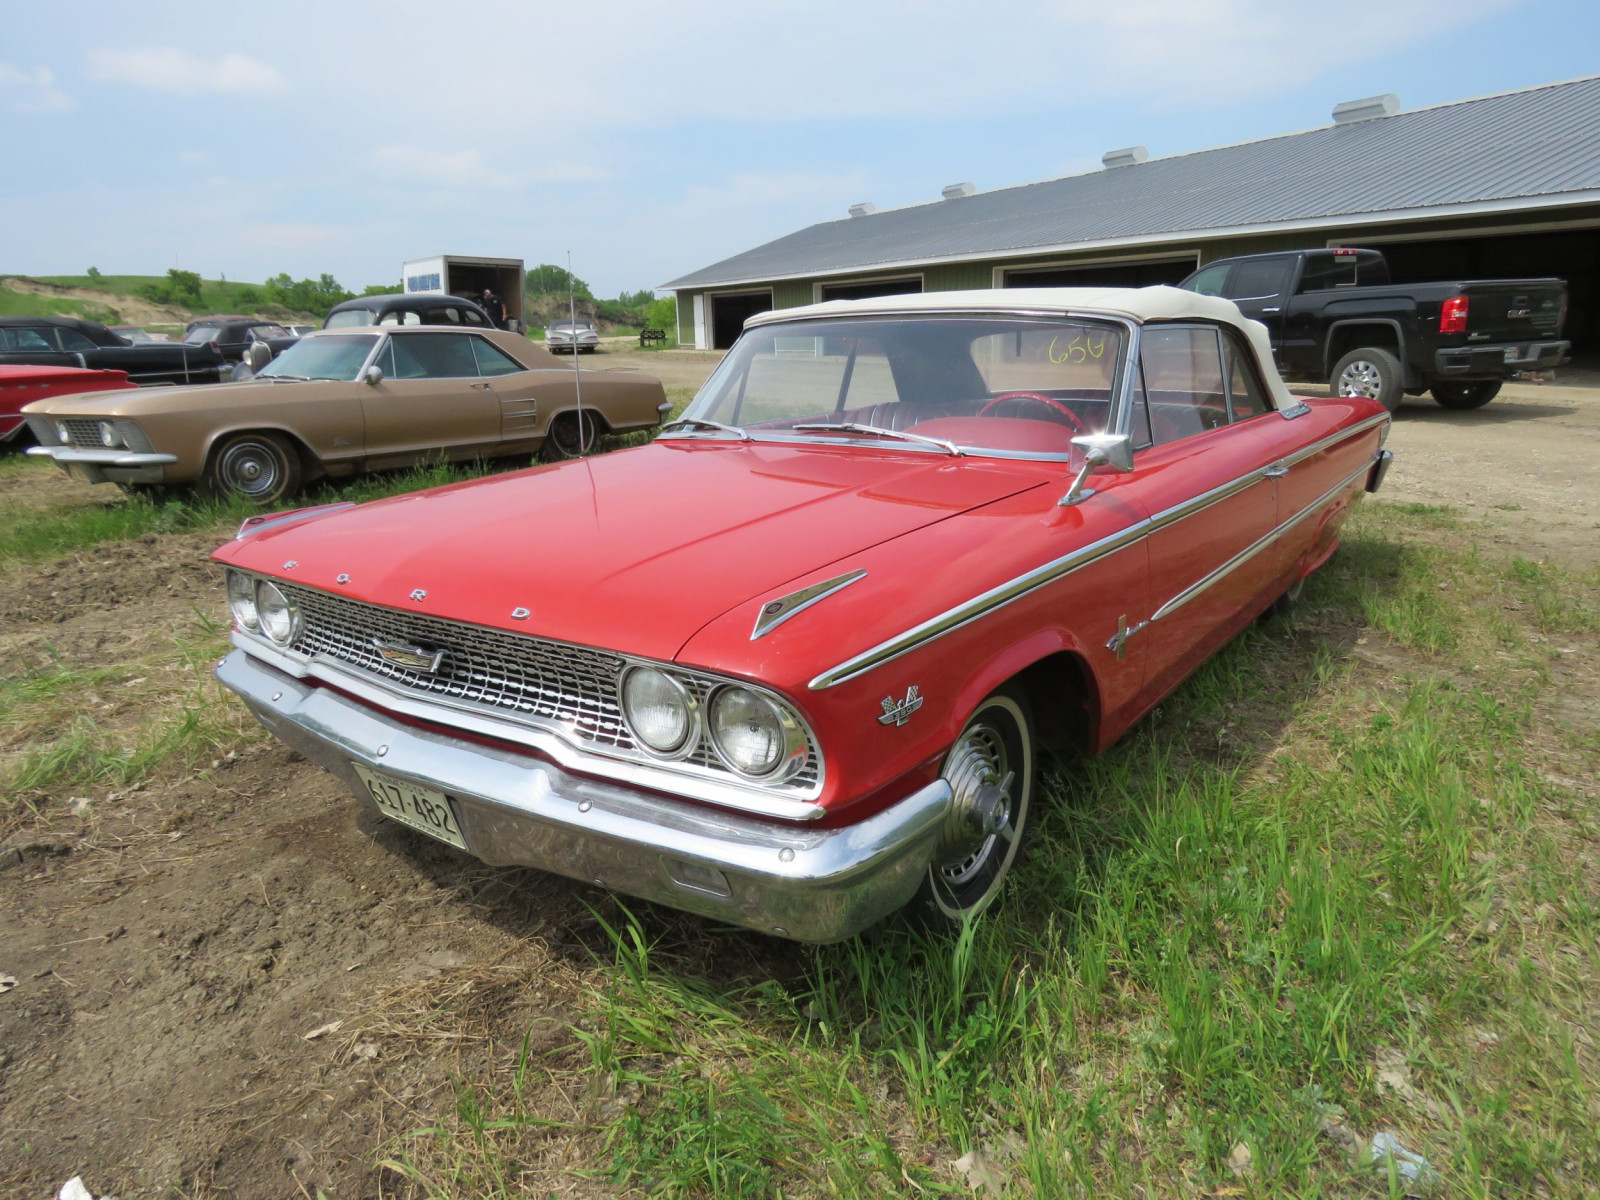 1963 Ford Galaxie 500XL Convertible 3G69Z183135 - Image 1